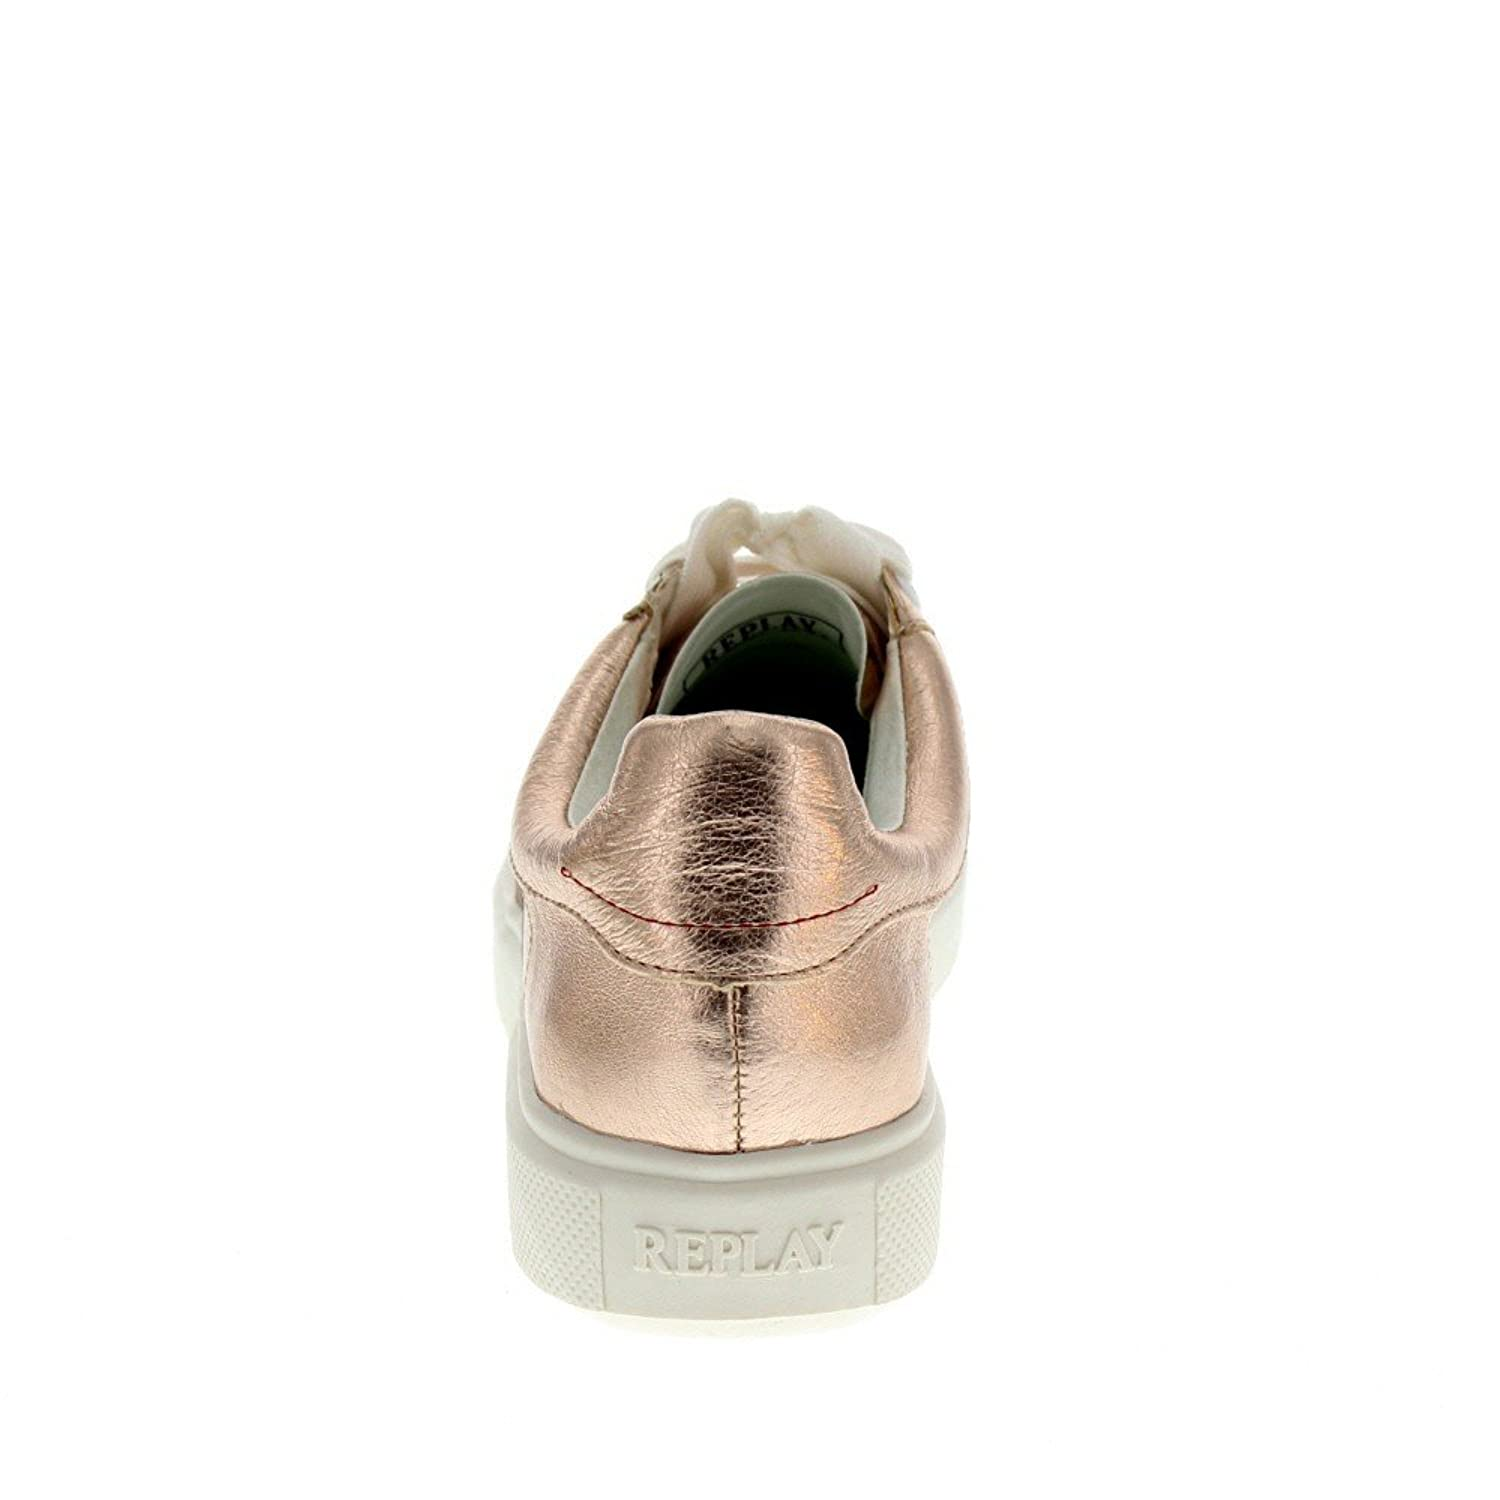 replay Shoes - Lune RZ740006L - Copper, Tamaño:EUR 38